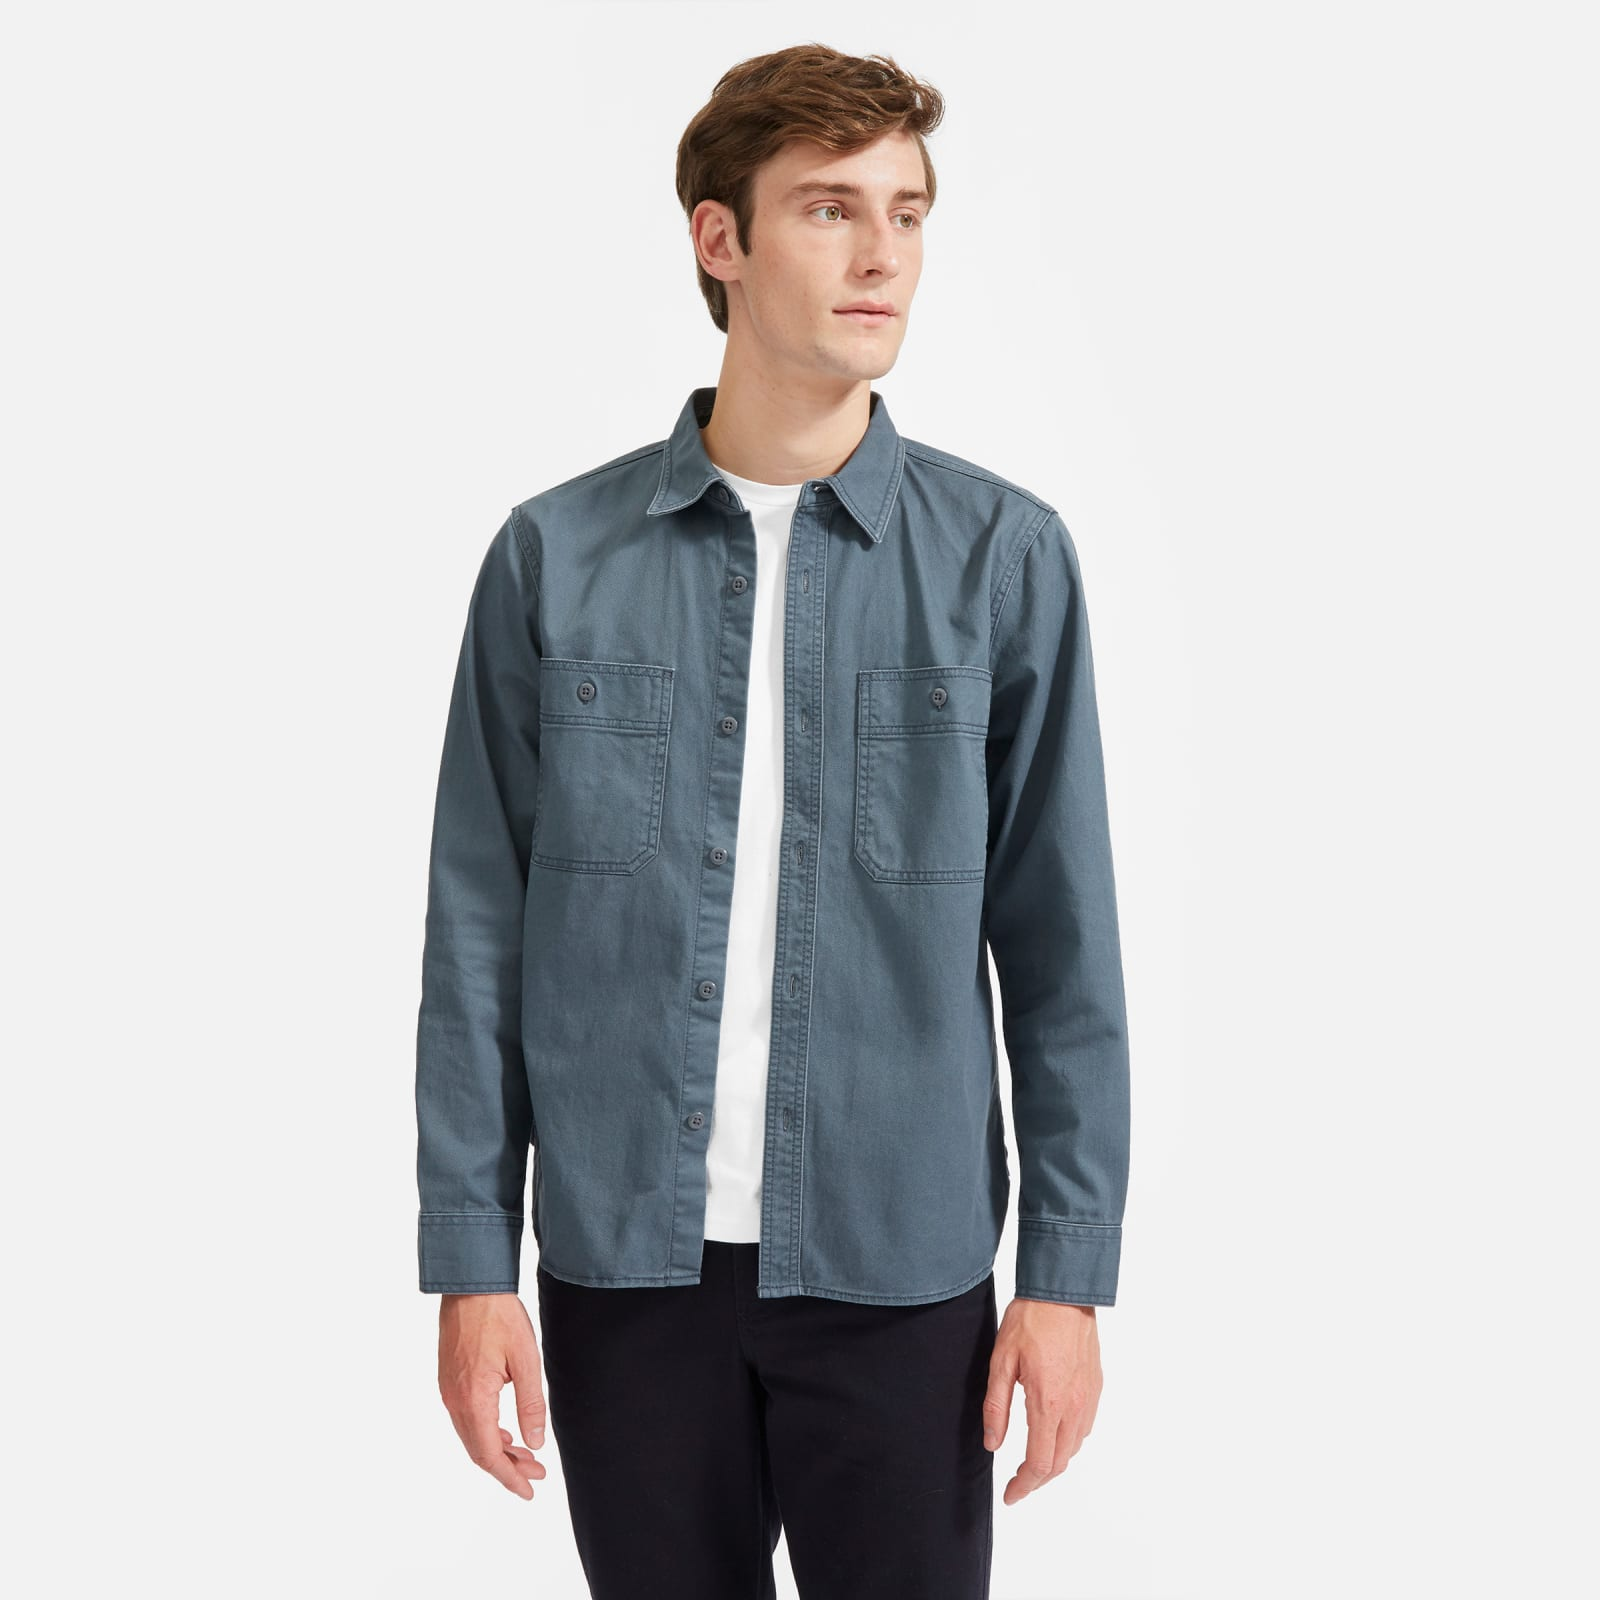 chore overshirt by everlane in slate, size s